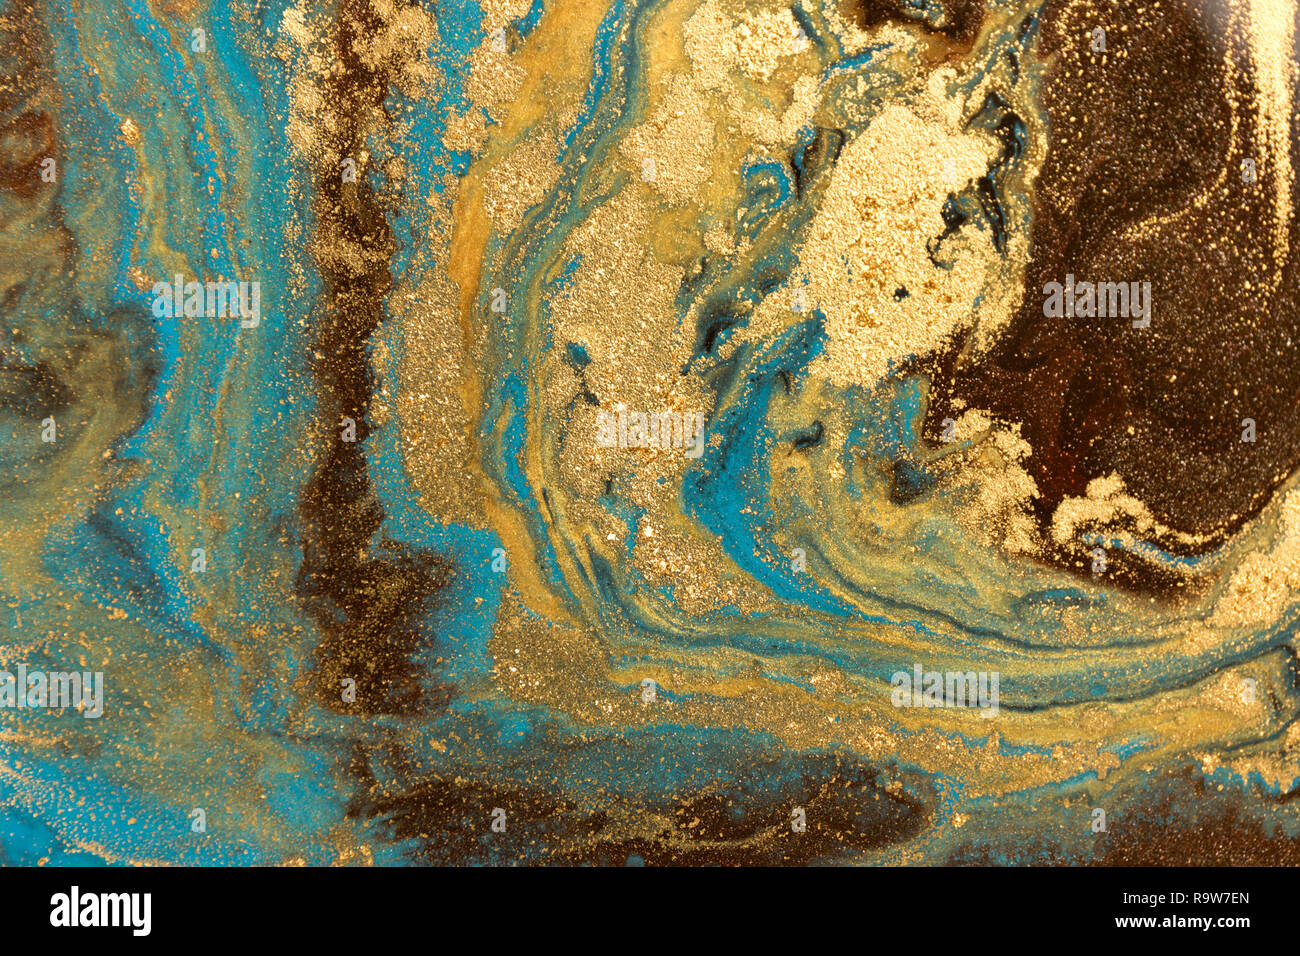 Gold Marbling Texture Design Blue And Golden Marble Pattern Fluid Art Stock Photo Alamy